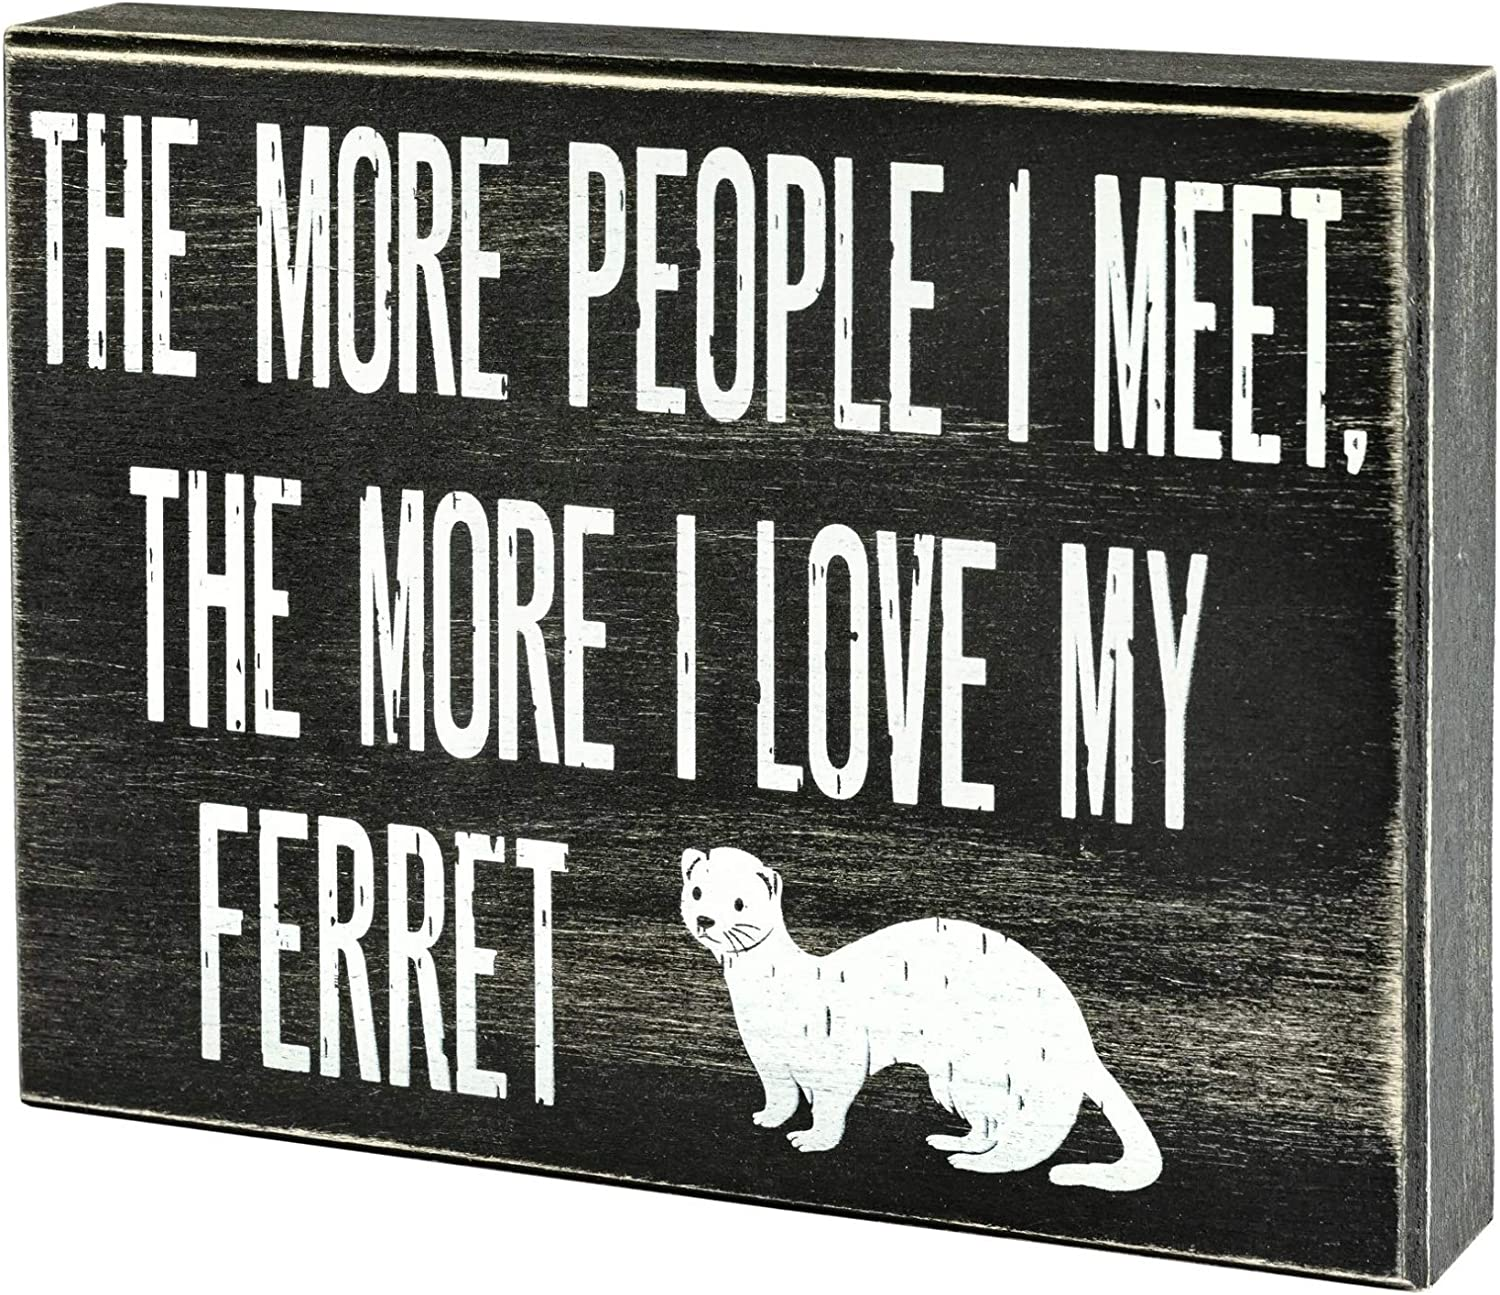 JennyGems - The More People I Meet, The More I Love My Ferret - Ferret Decor - Ferret Accessory Gift - Ferret Gifts - Ferret Sign - Shelf Knick Knacks